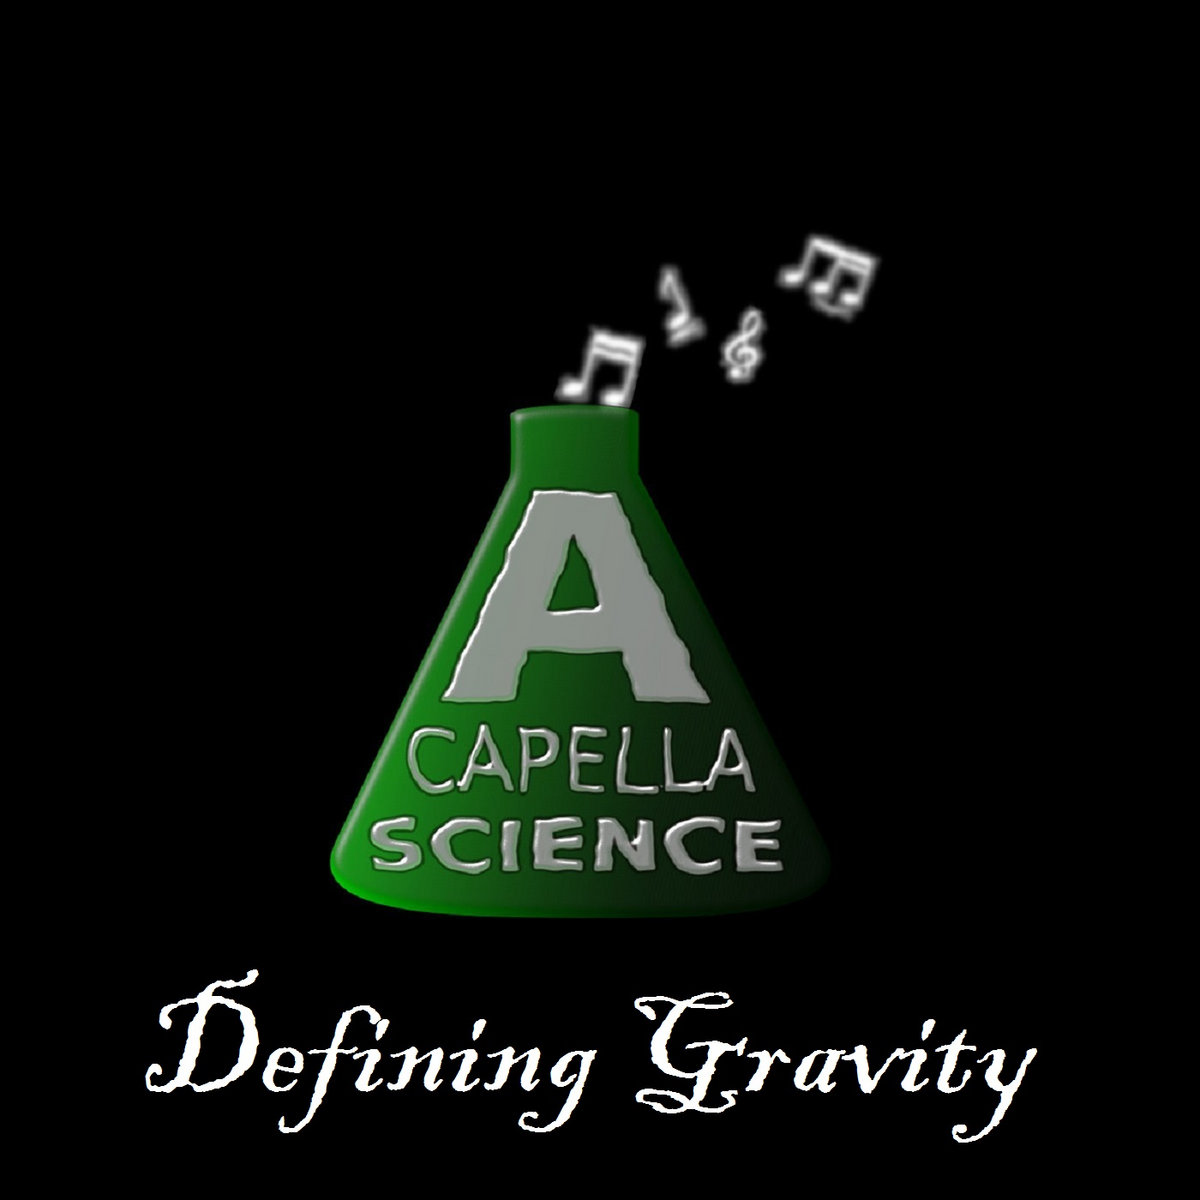 Defining Gravity Feat Dianna Cowern Malinda Kathleen Reese A Capella Science Timblais Song you will be found ukulele chords and tabs by ben platt. defining gravity feat dianna cowern malinda kathleen reese